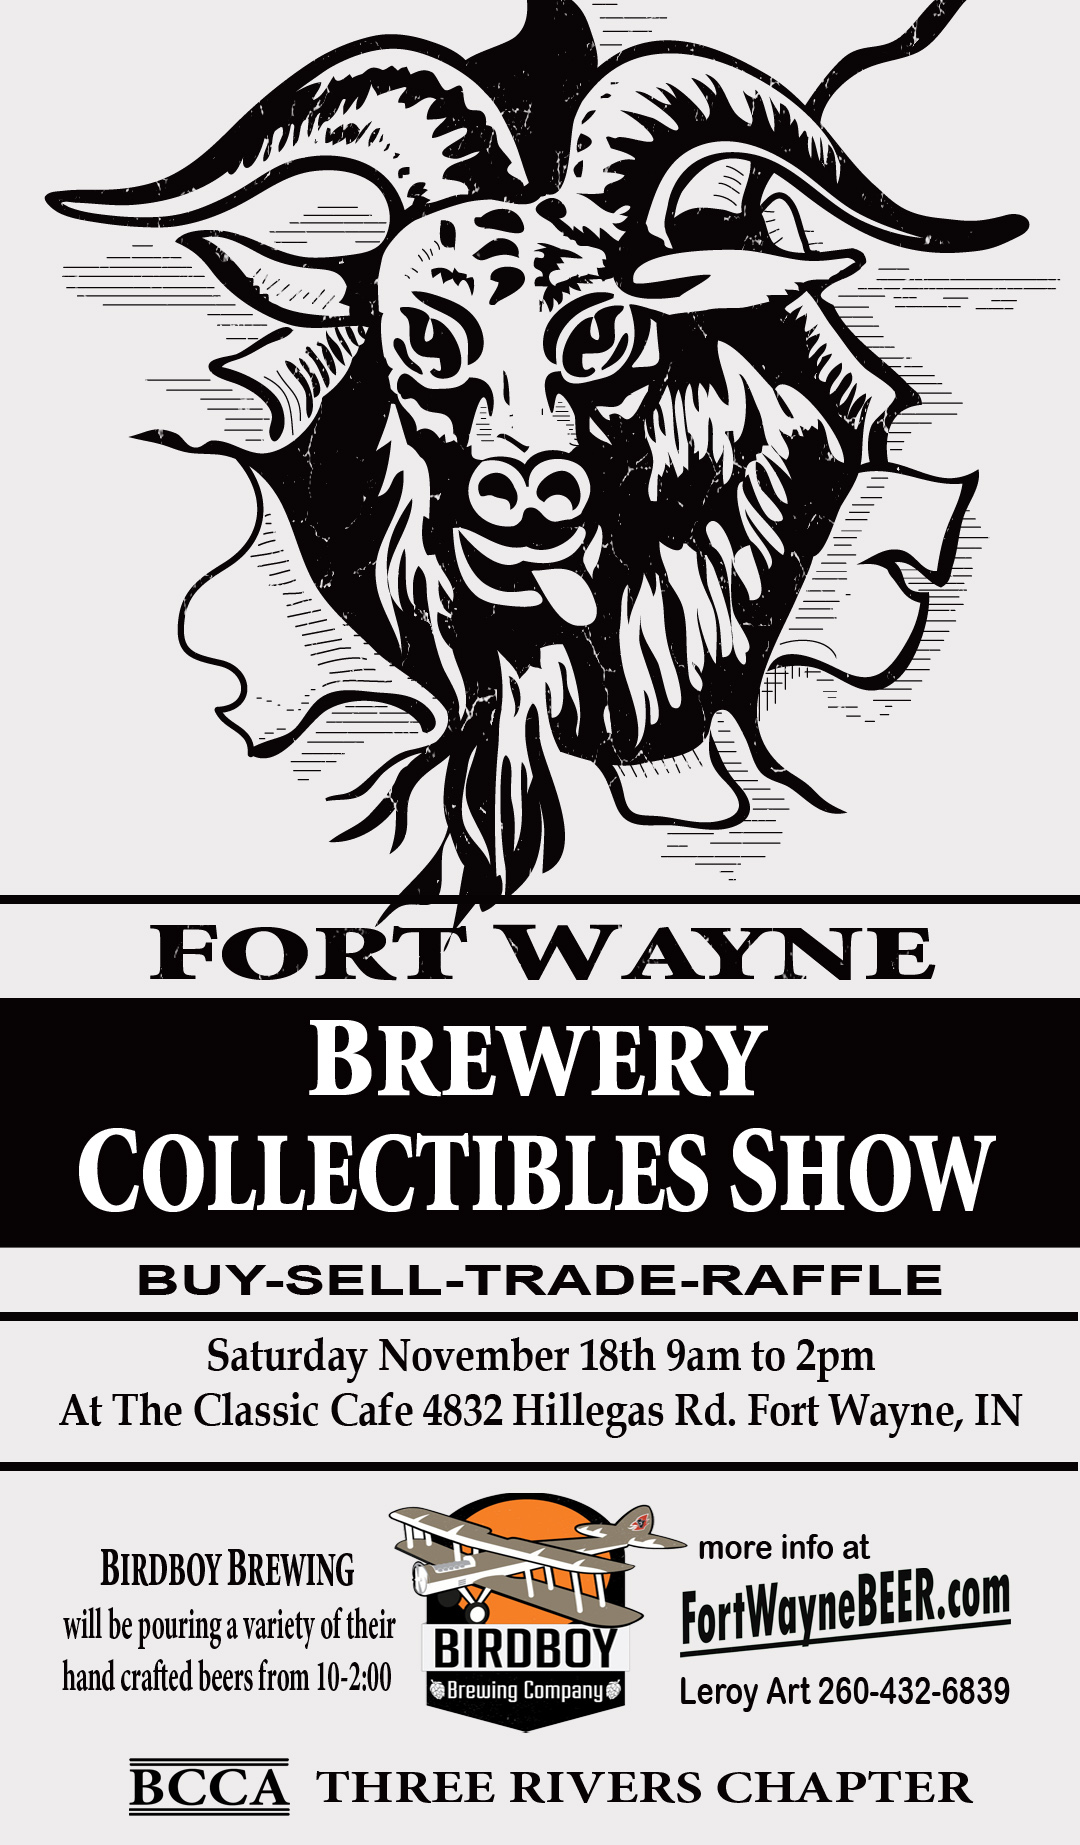 2017 Fort Wayne Brewery Collectibles Show Bock ad2.jpg